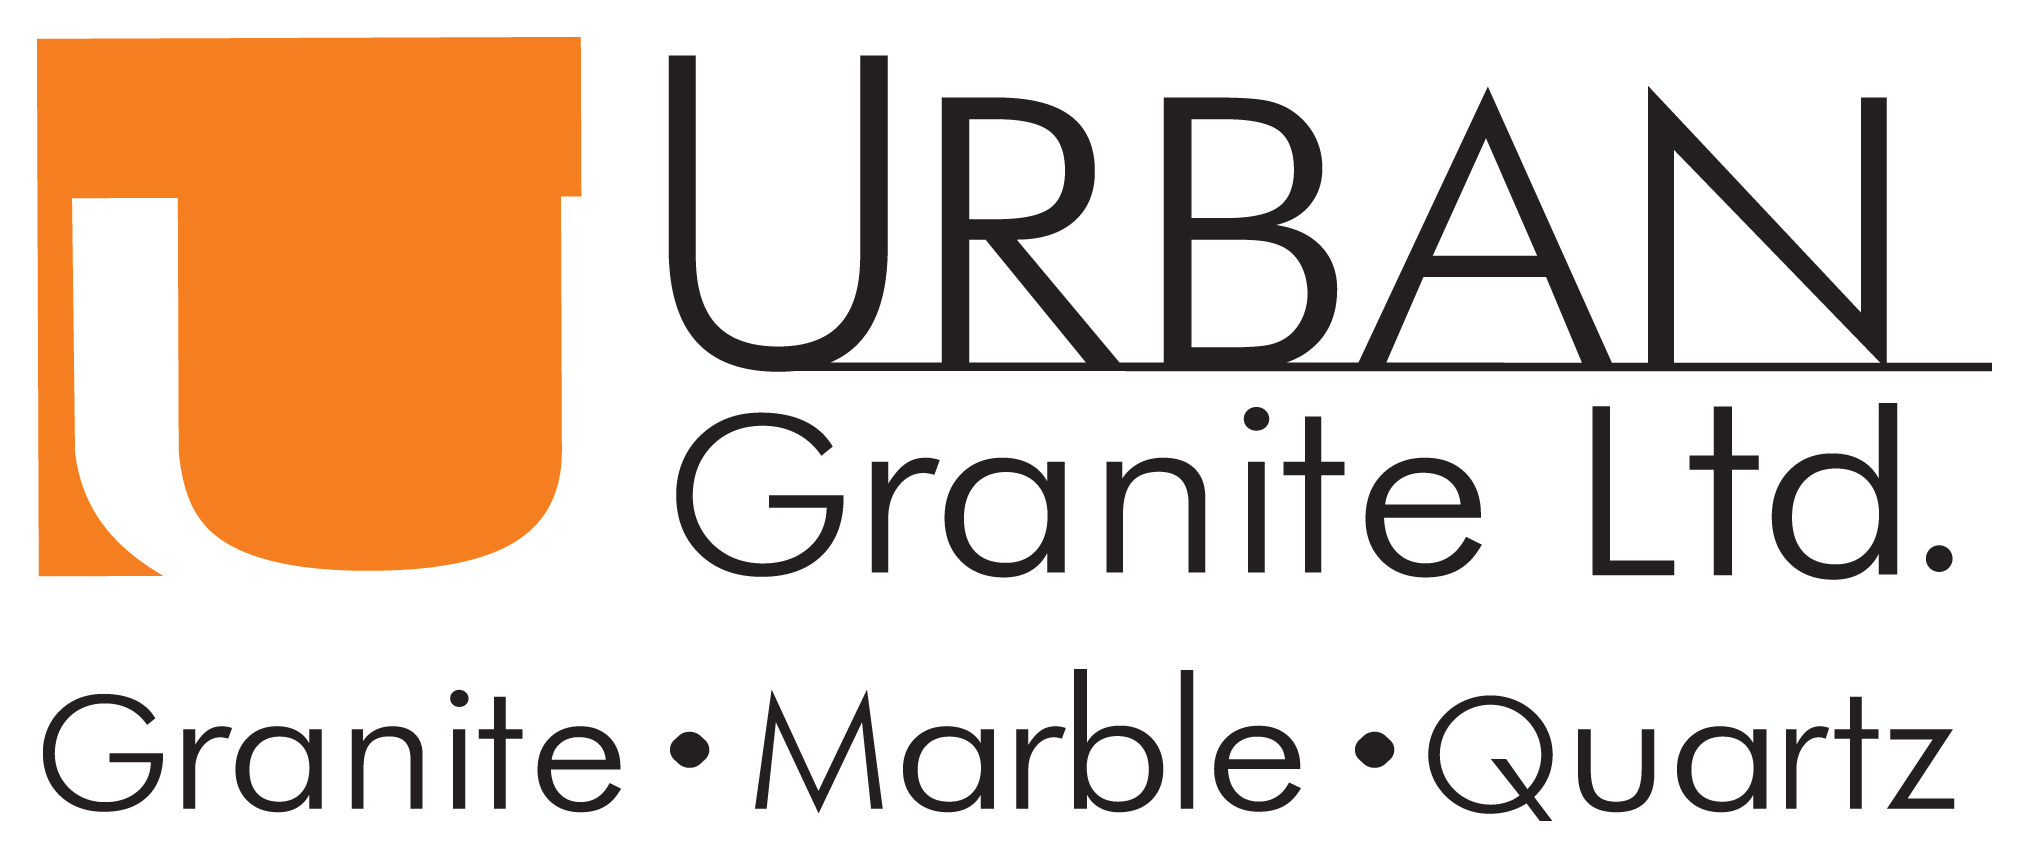 Urban Granite Ltd.